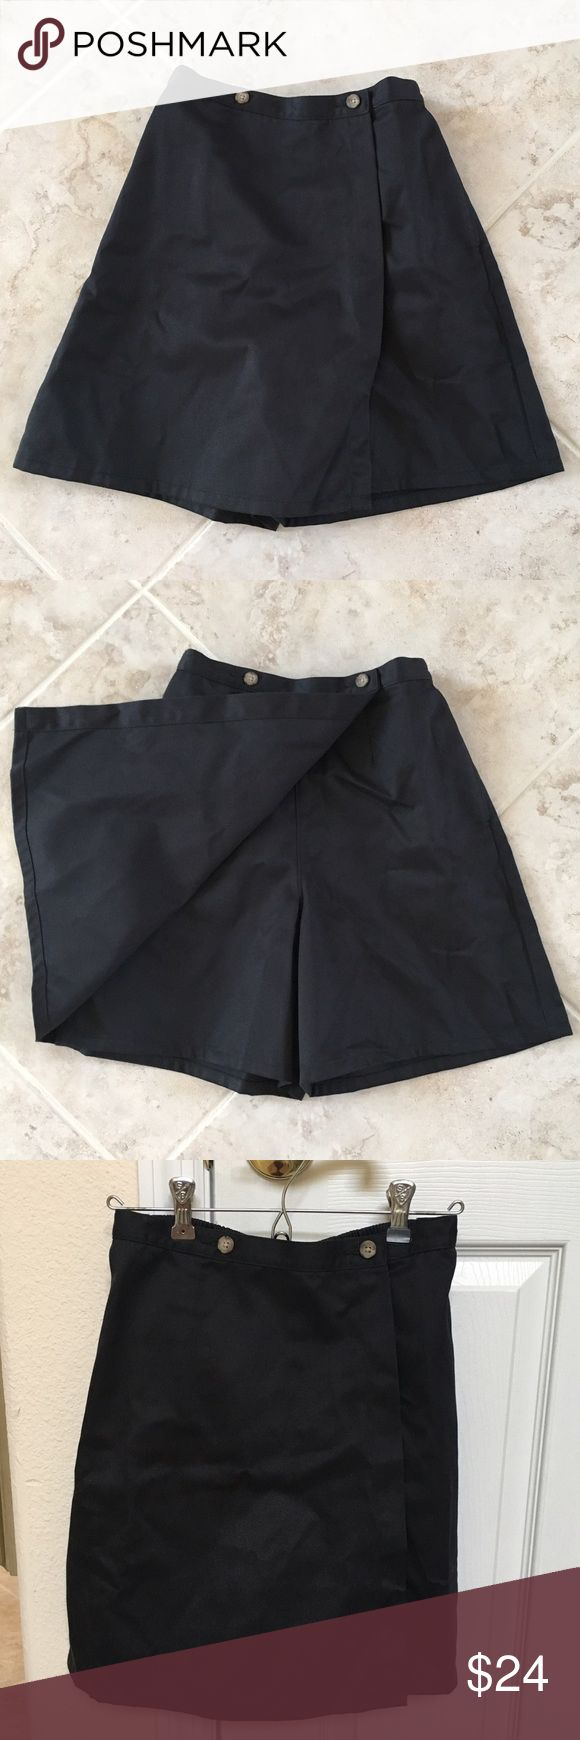 Black Skort From Lands End School Uniform Size 16S Girls Black Skort From Lands End School Uniform, Size 16S NWOT.  Brand new Black skort from Lands End.  Looks like a skirt with hidden shorts for comfort & coverage.  Pull-on style with a back elastic waist for added ease.  Includes side pocket.  Universal school uniform.  Above-the-knee length.  Size 16 Slim Girls uniform.  65% Polyester & 35% Cotton.  New name tag is attached.  From clean smoke-free home. Lands' End Bottoms Skorts